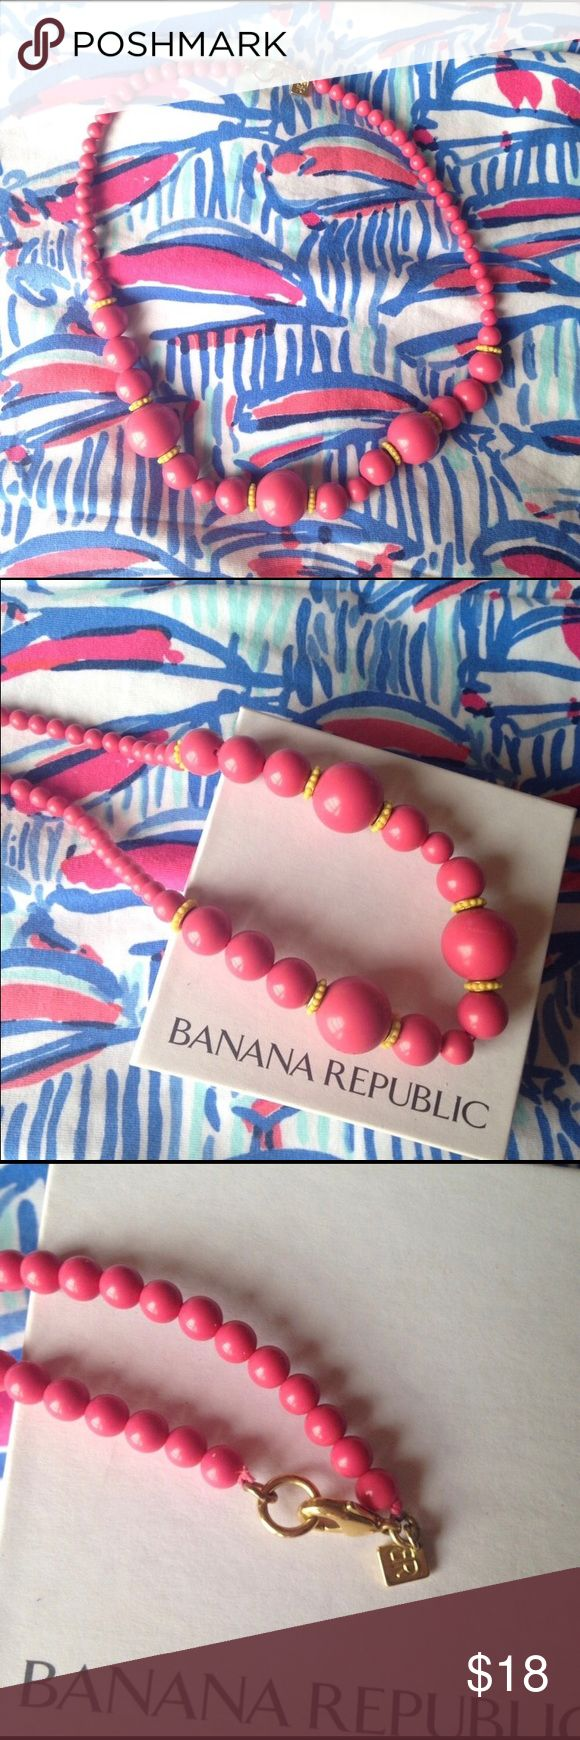 Banana Republic Pink Beaded Statement Necklace Fun pink beaded statement necklace from Banana Republic! Pink beads with yellow accents. Gold hardware. 18.5 inches long. Comes in original box! Great pop of color or preppy statement piece! Looks great with Lilly Pullitzer patterns. Banana Republic Jewelry Necklaces